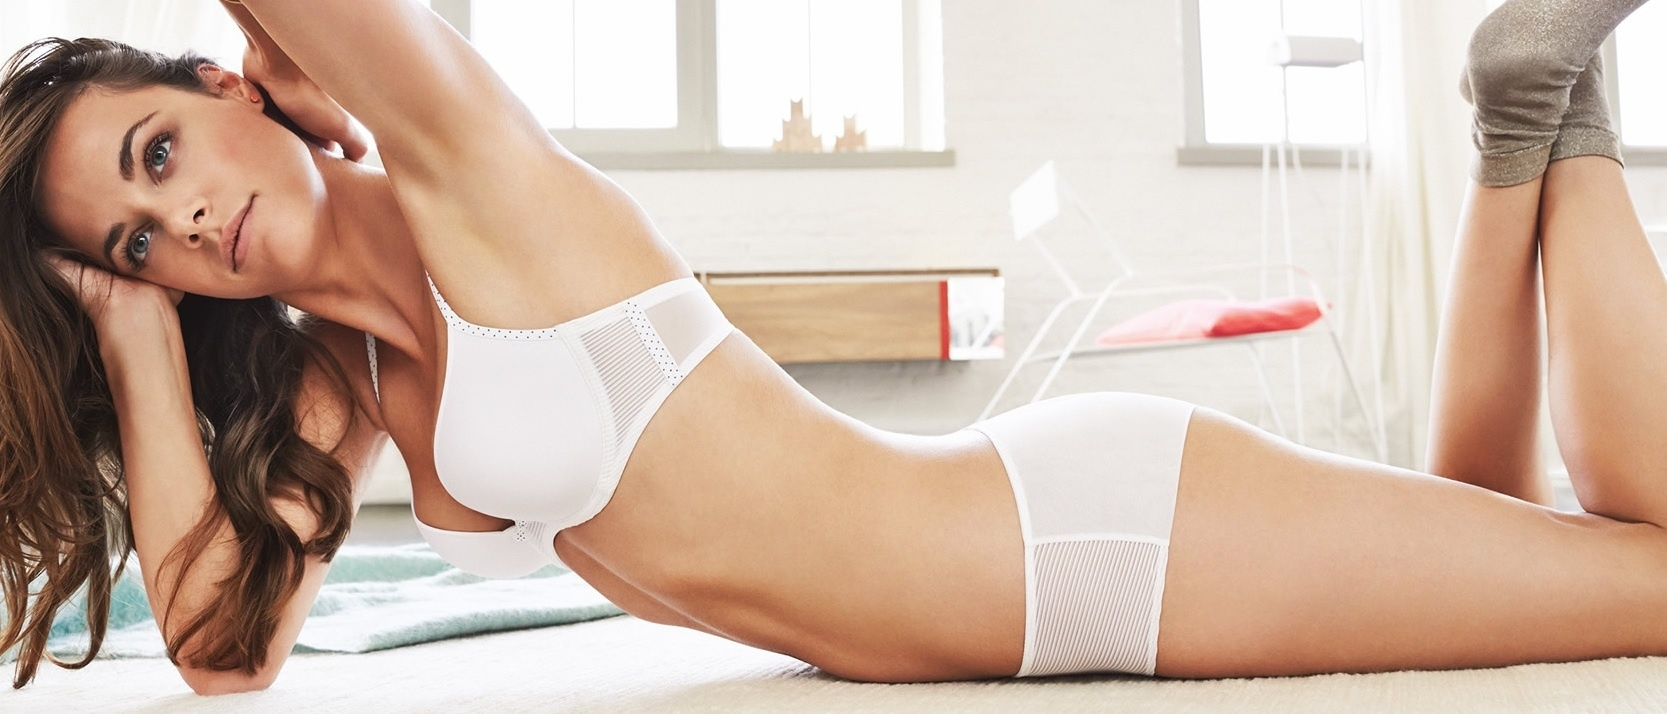 Four Types of Bras Every Woman Should Own